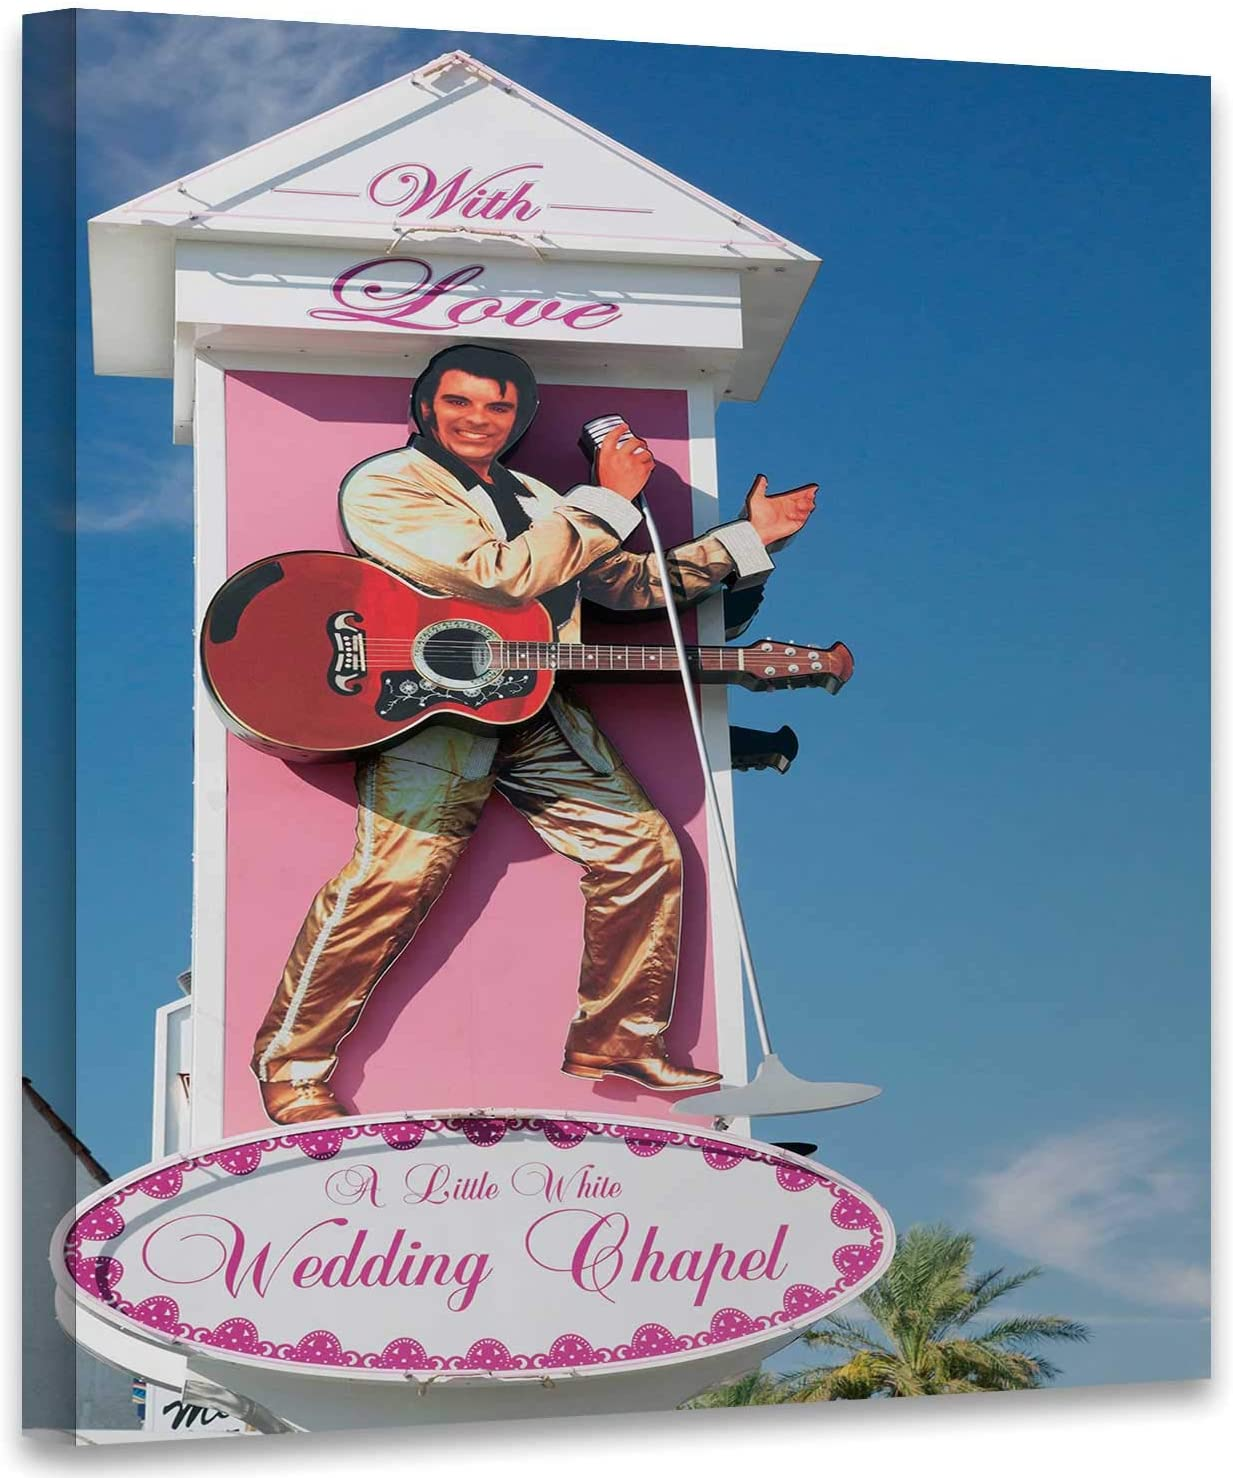 Little White Wedding Chapel Sign in Las Vegas,Room Decorations Nevada Presle Home Decoration 8x8